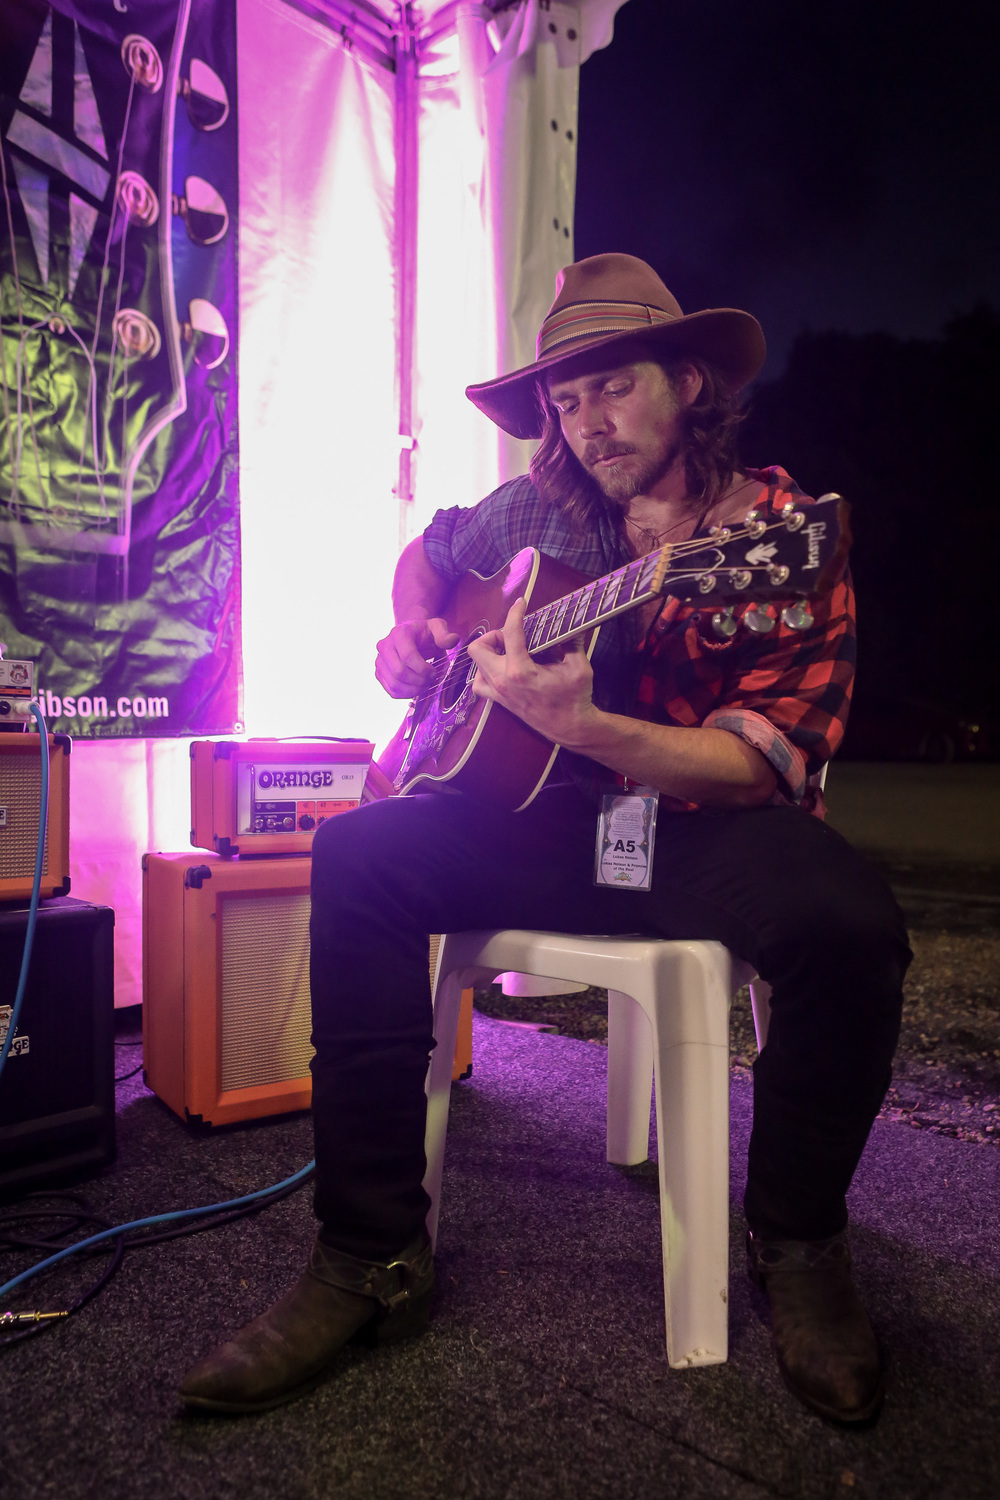 lukas nelson, backstage in the gibson tent